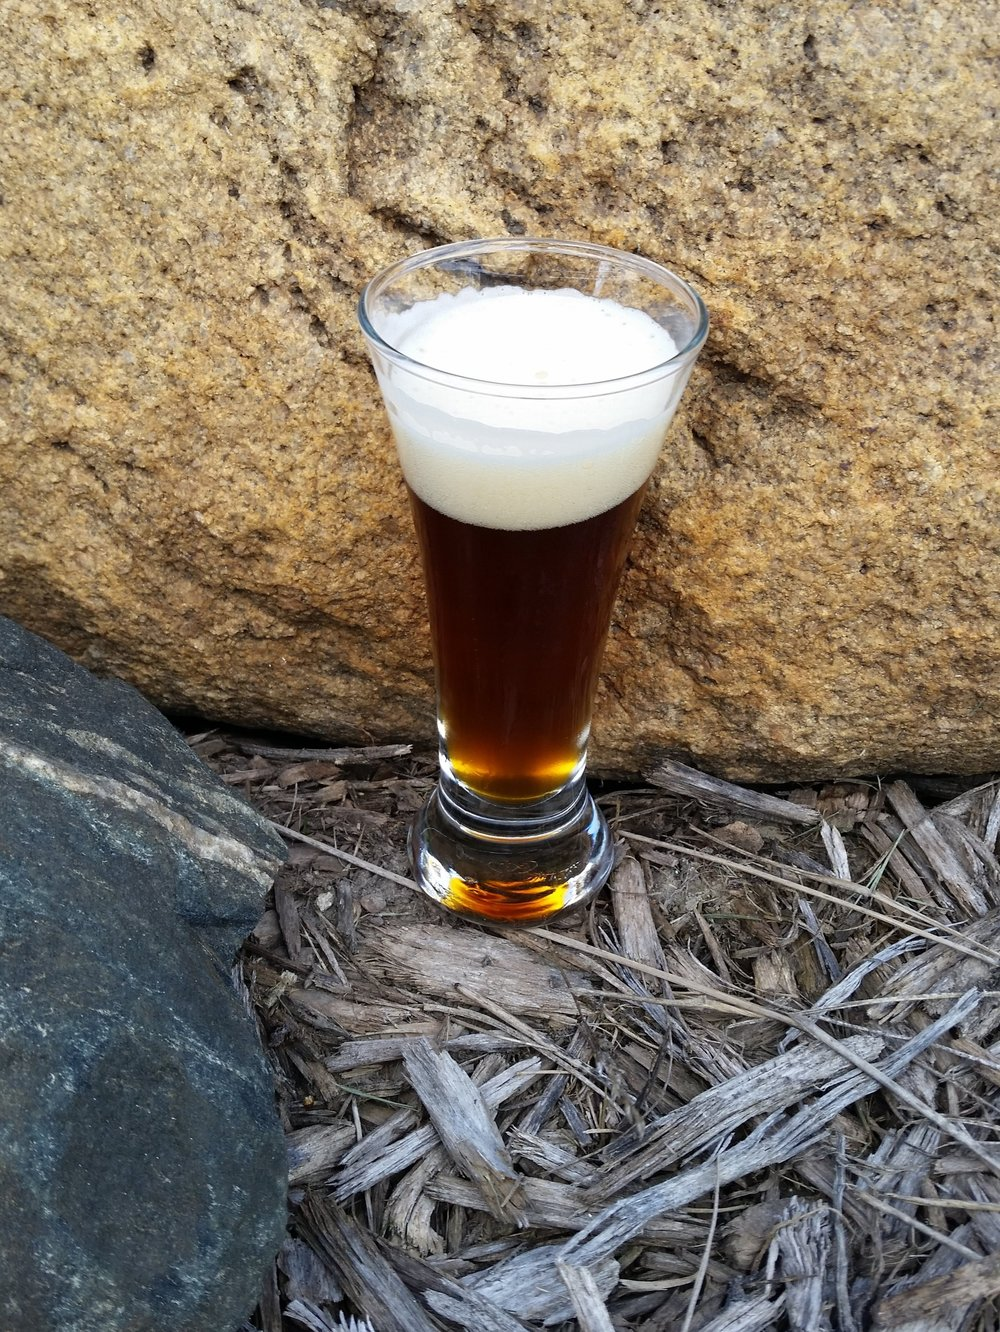 Fall is in the air and this Octoberfest brew proves it...